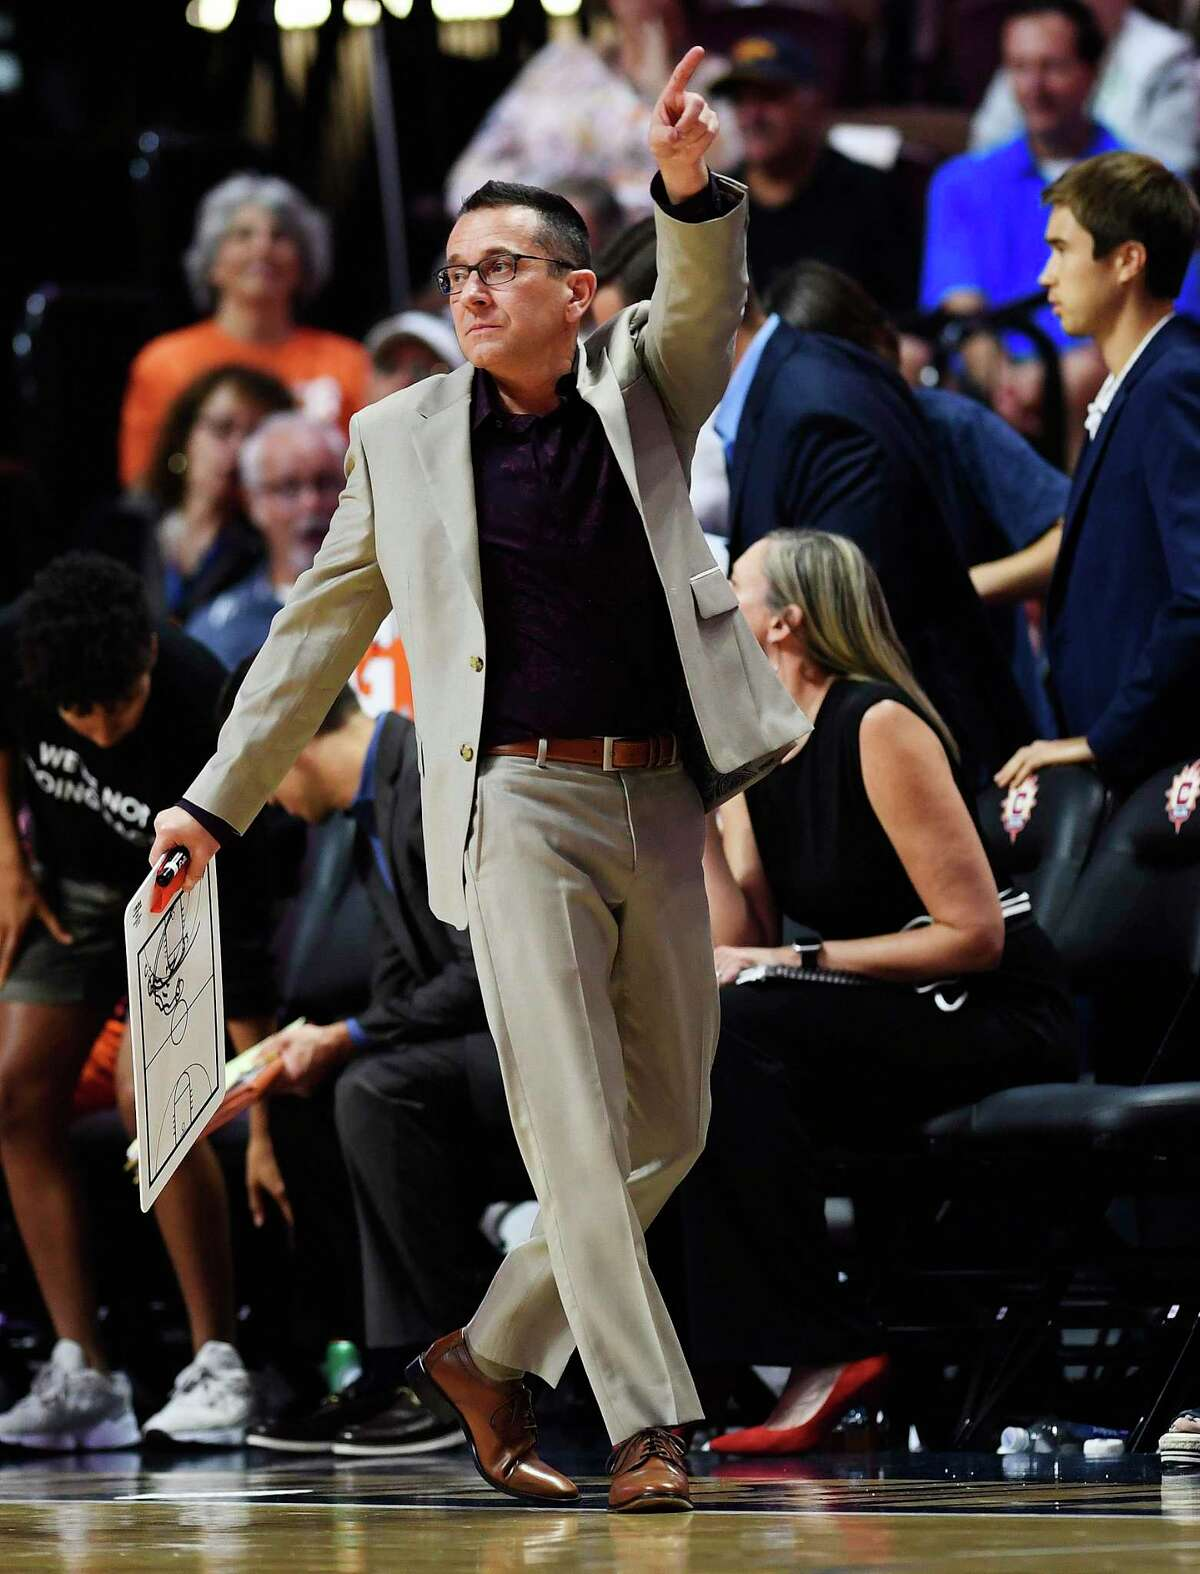 Connecticut Sun coach Curt Miller motions during the team's game against the Dallas Wings on Sept. 4, 2019, in Uncasville.